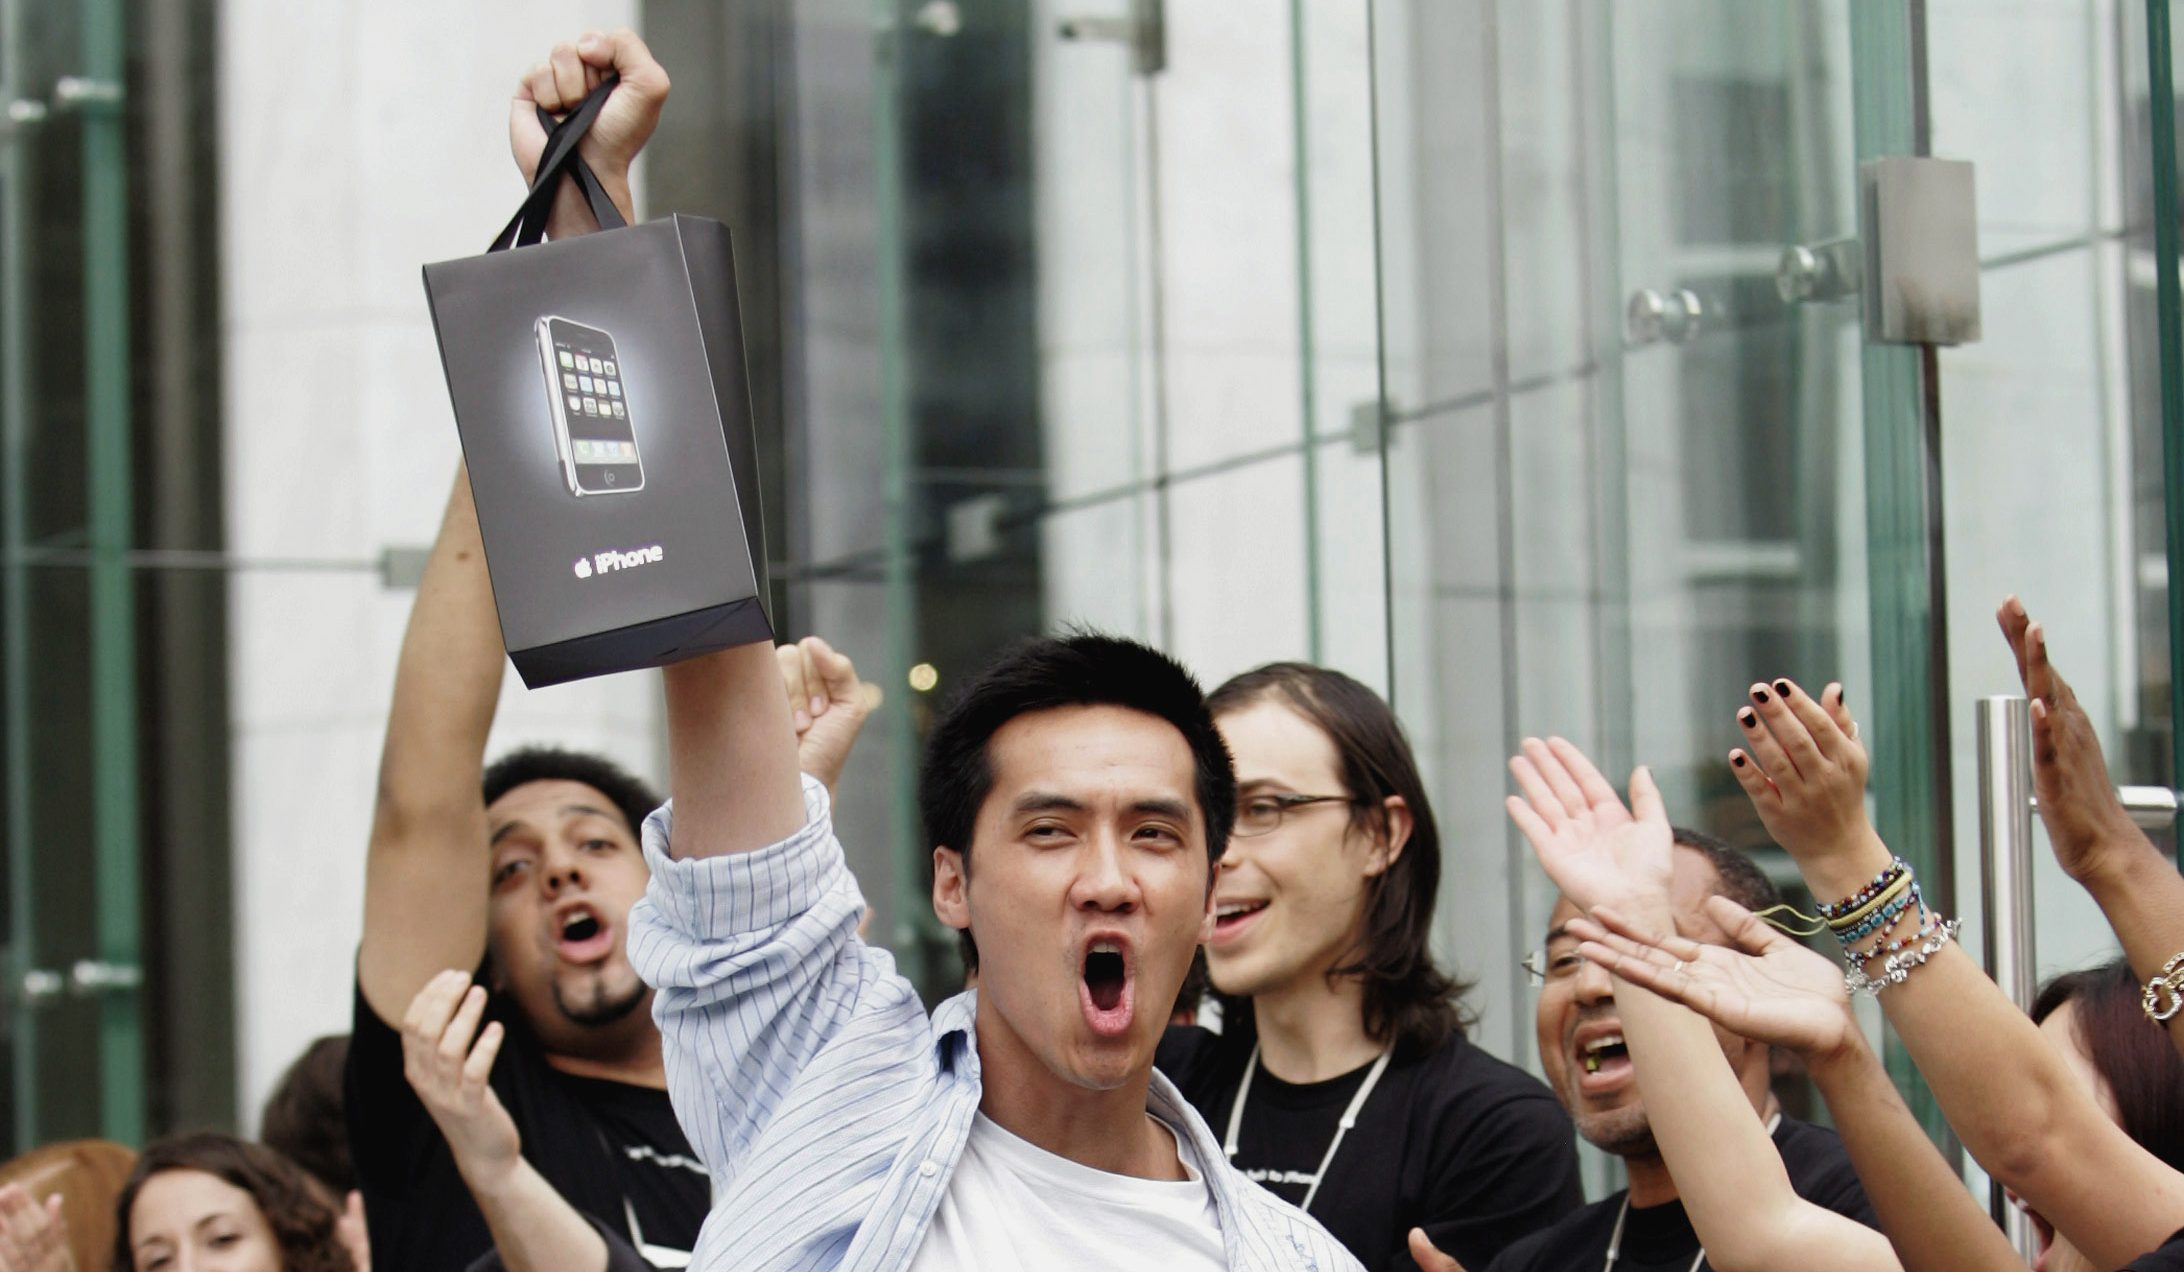 Surrounded by cheering Apple Store employees, one of the first iPhone buyers leaves the store on Fifth Avenue in New York, June 29, 2007.